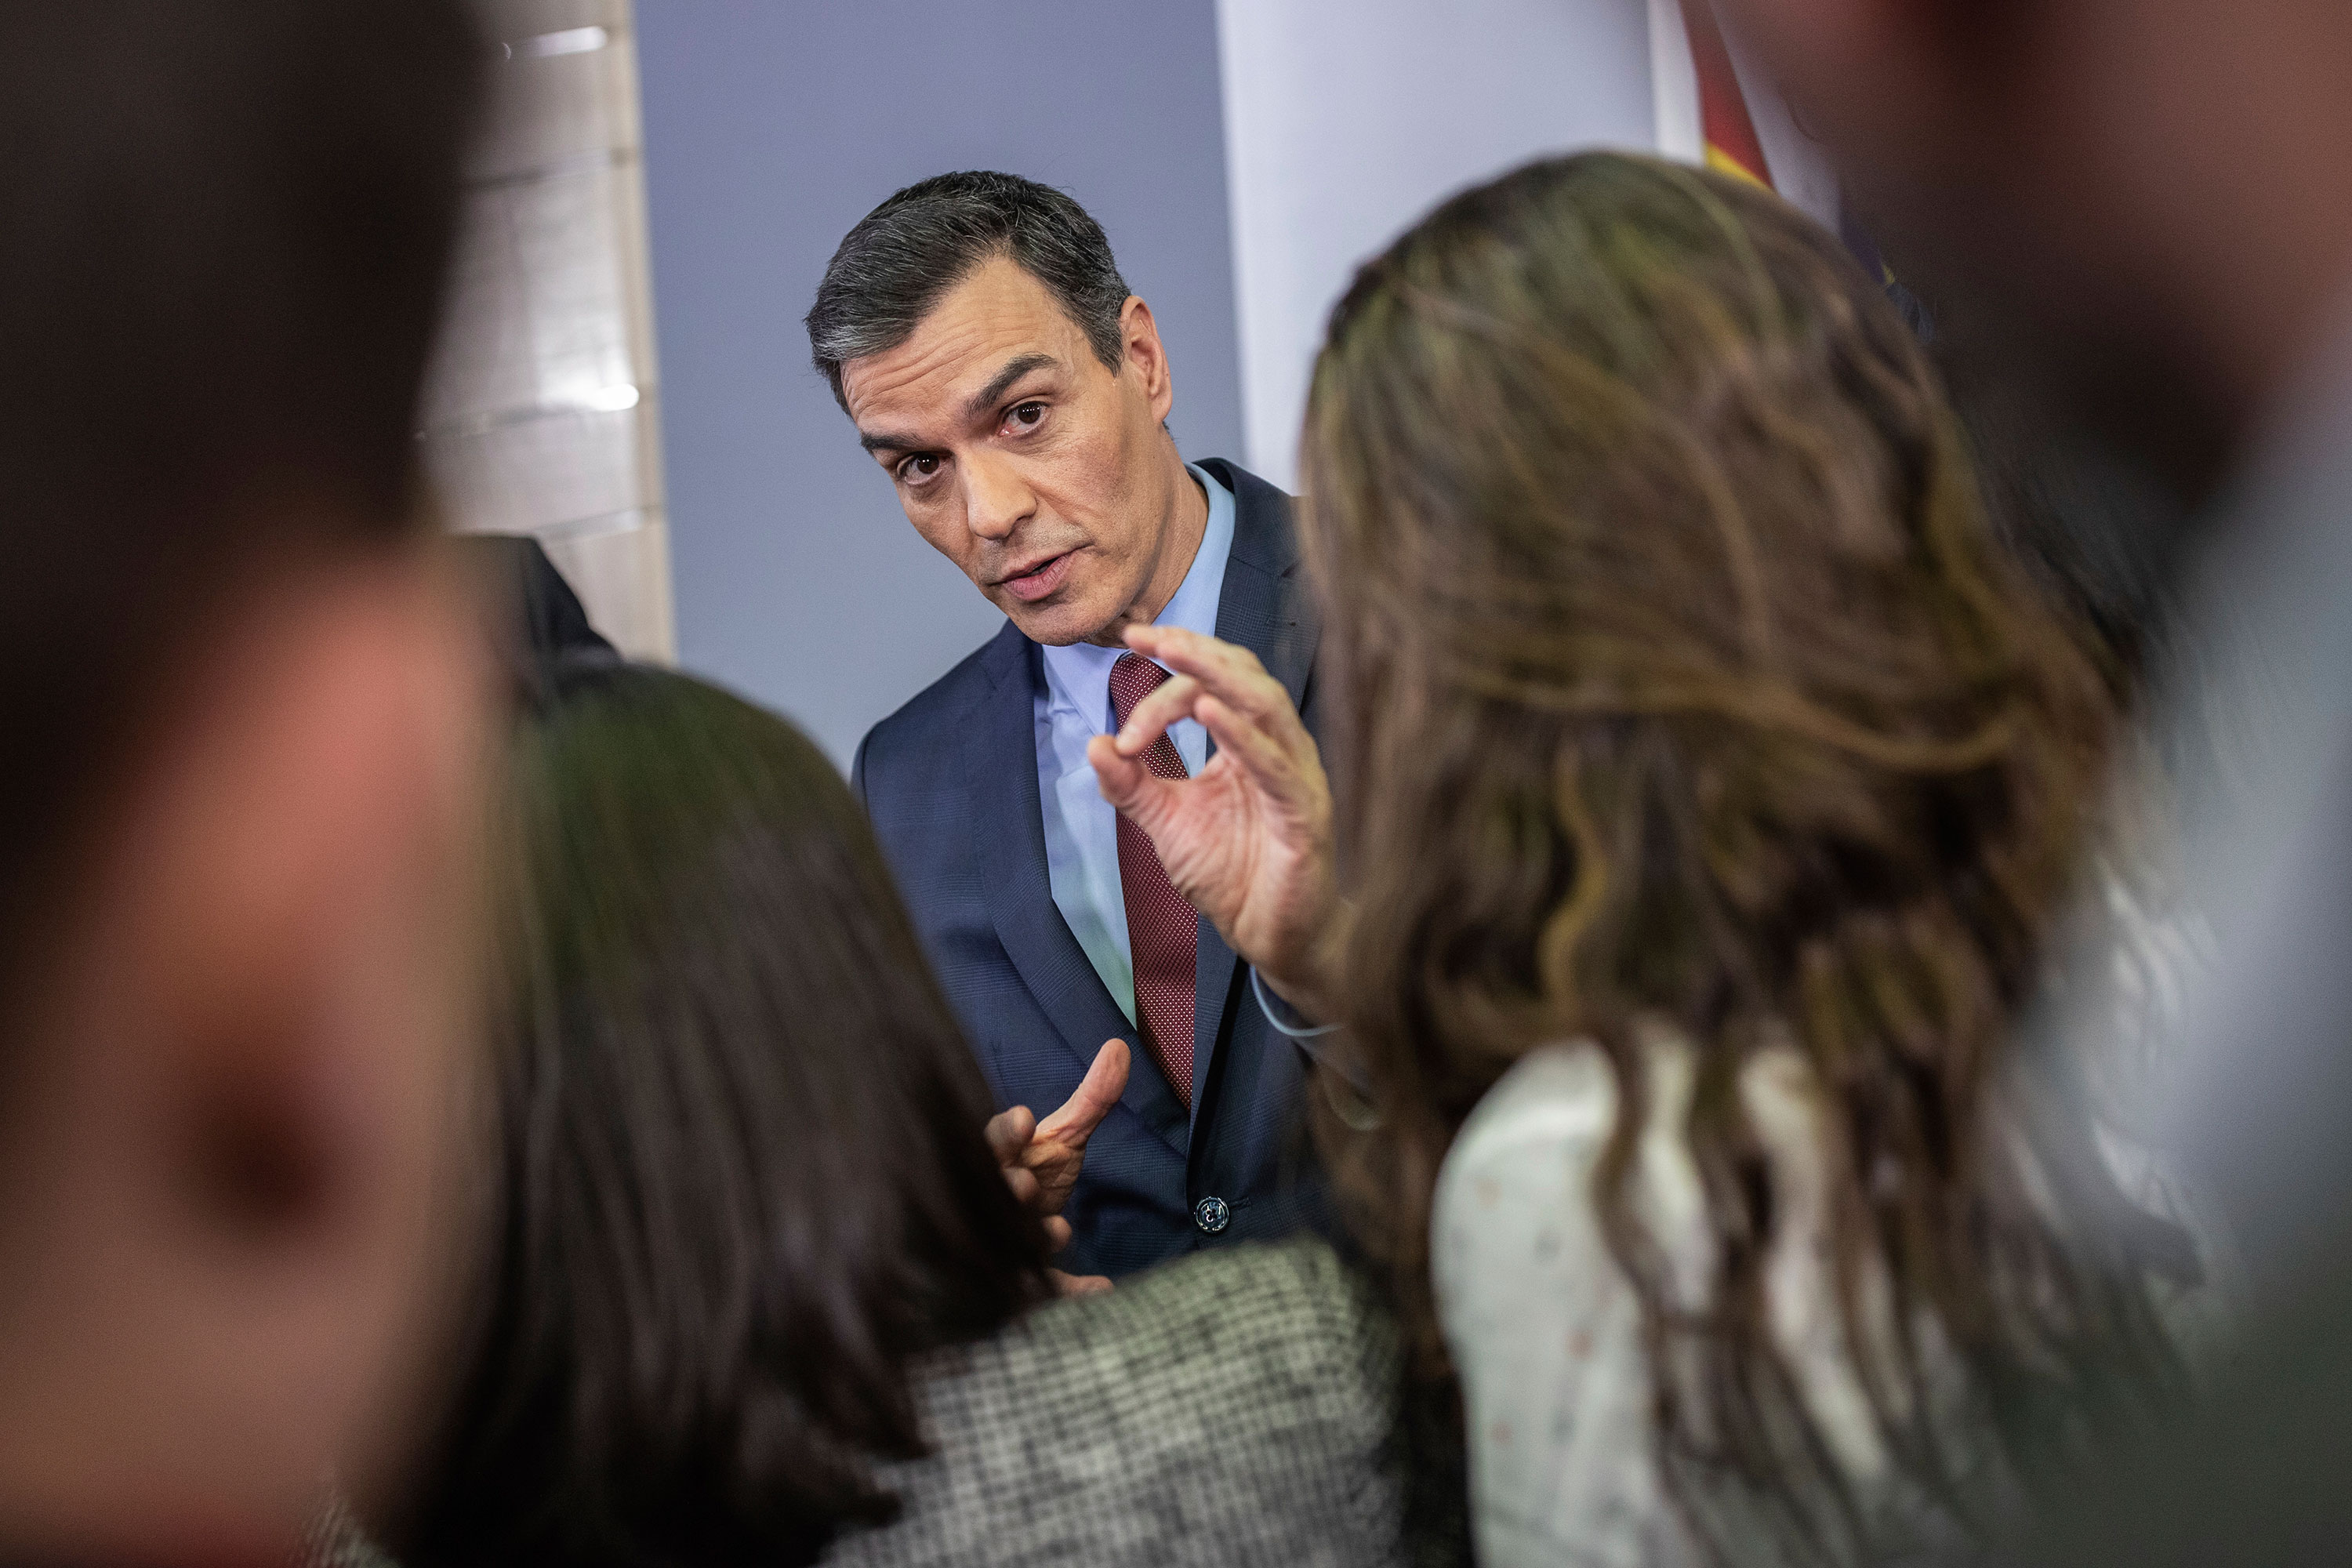 Spanish Prime Minister Pedro Sanchez talks to journalists after a coronavirus-related press conference at the Moncloa palace in Madrid, on March 10.